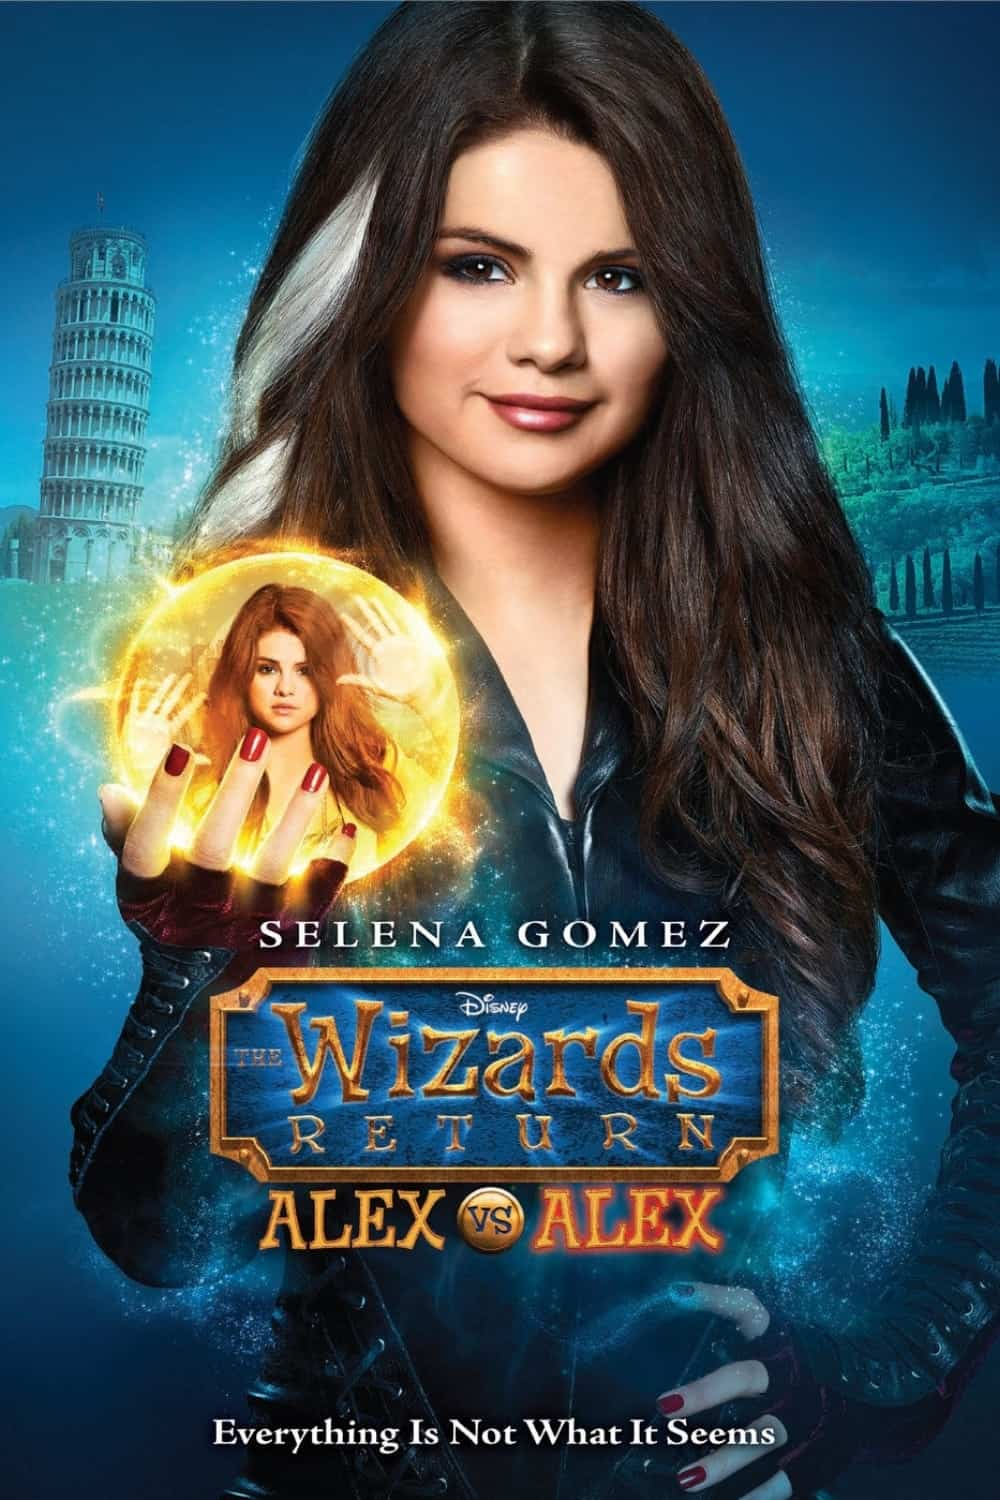 The Wizards Return: Alex vs. Alex, 2013